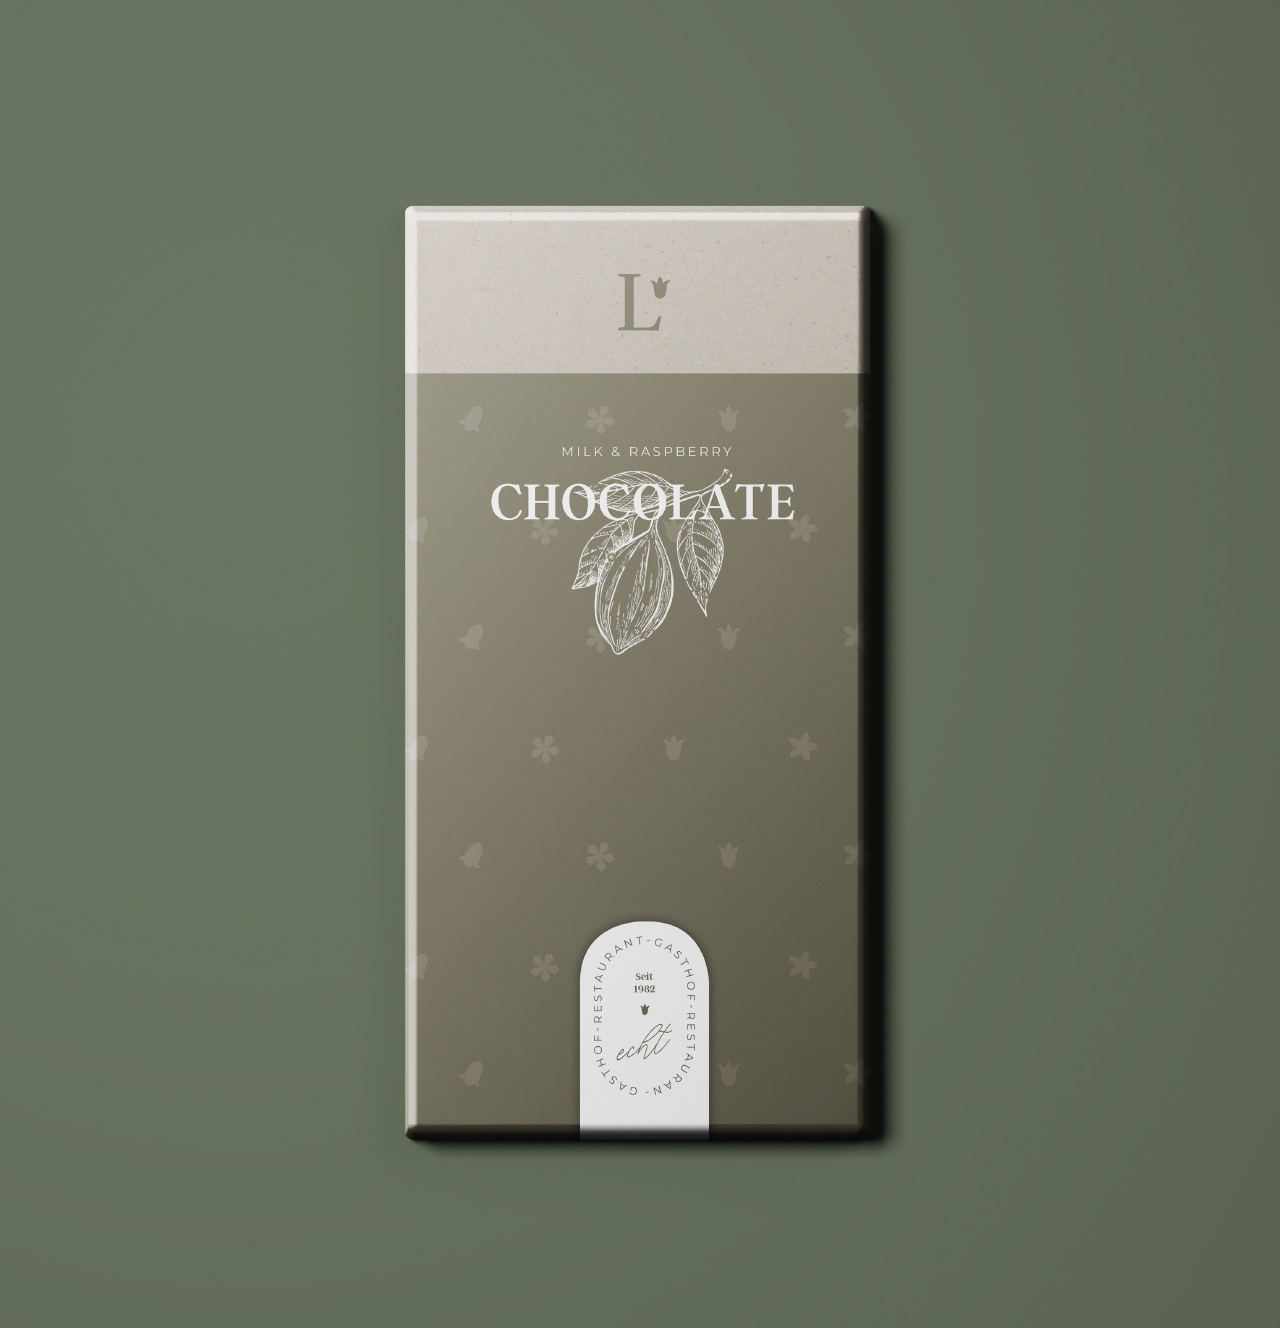 LL-Chocolate-1280